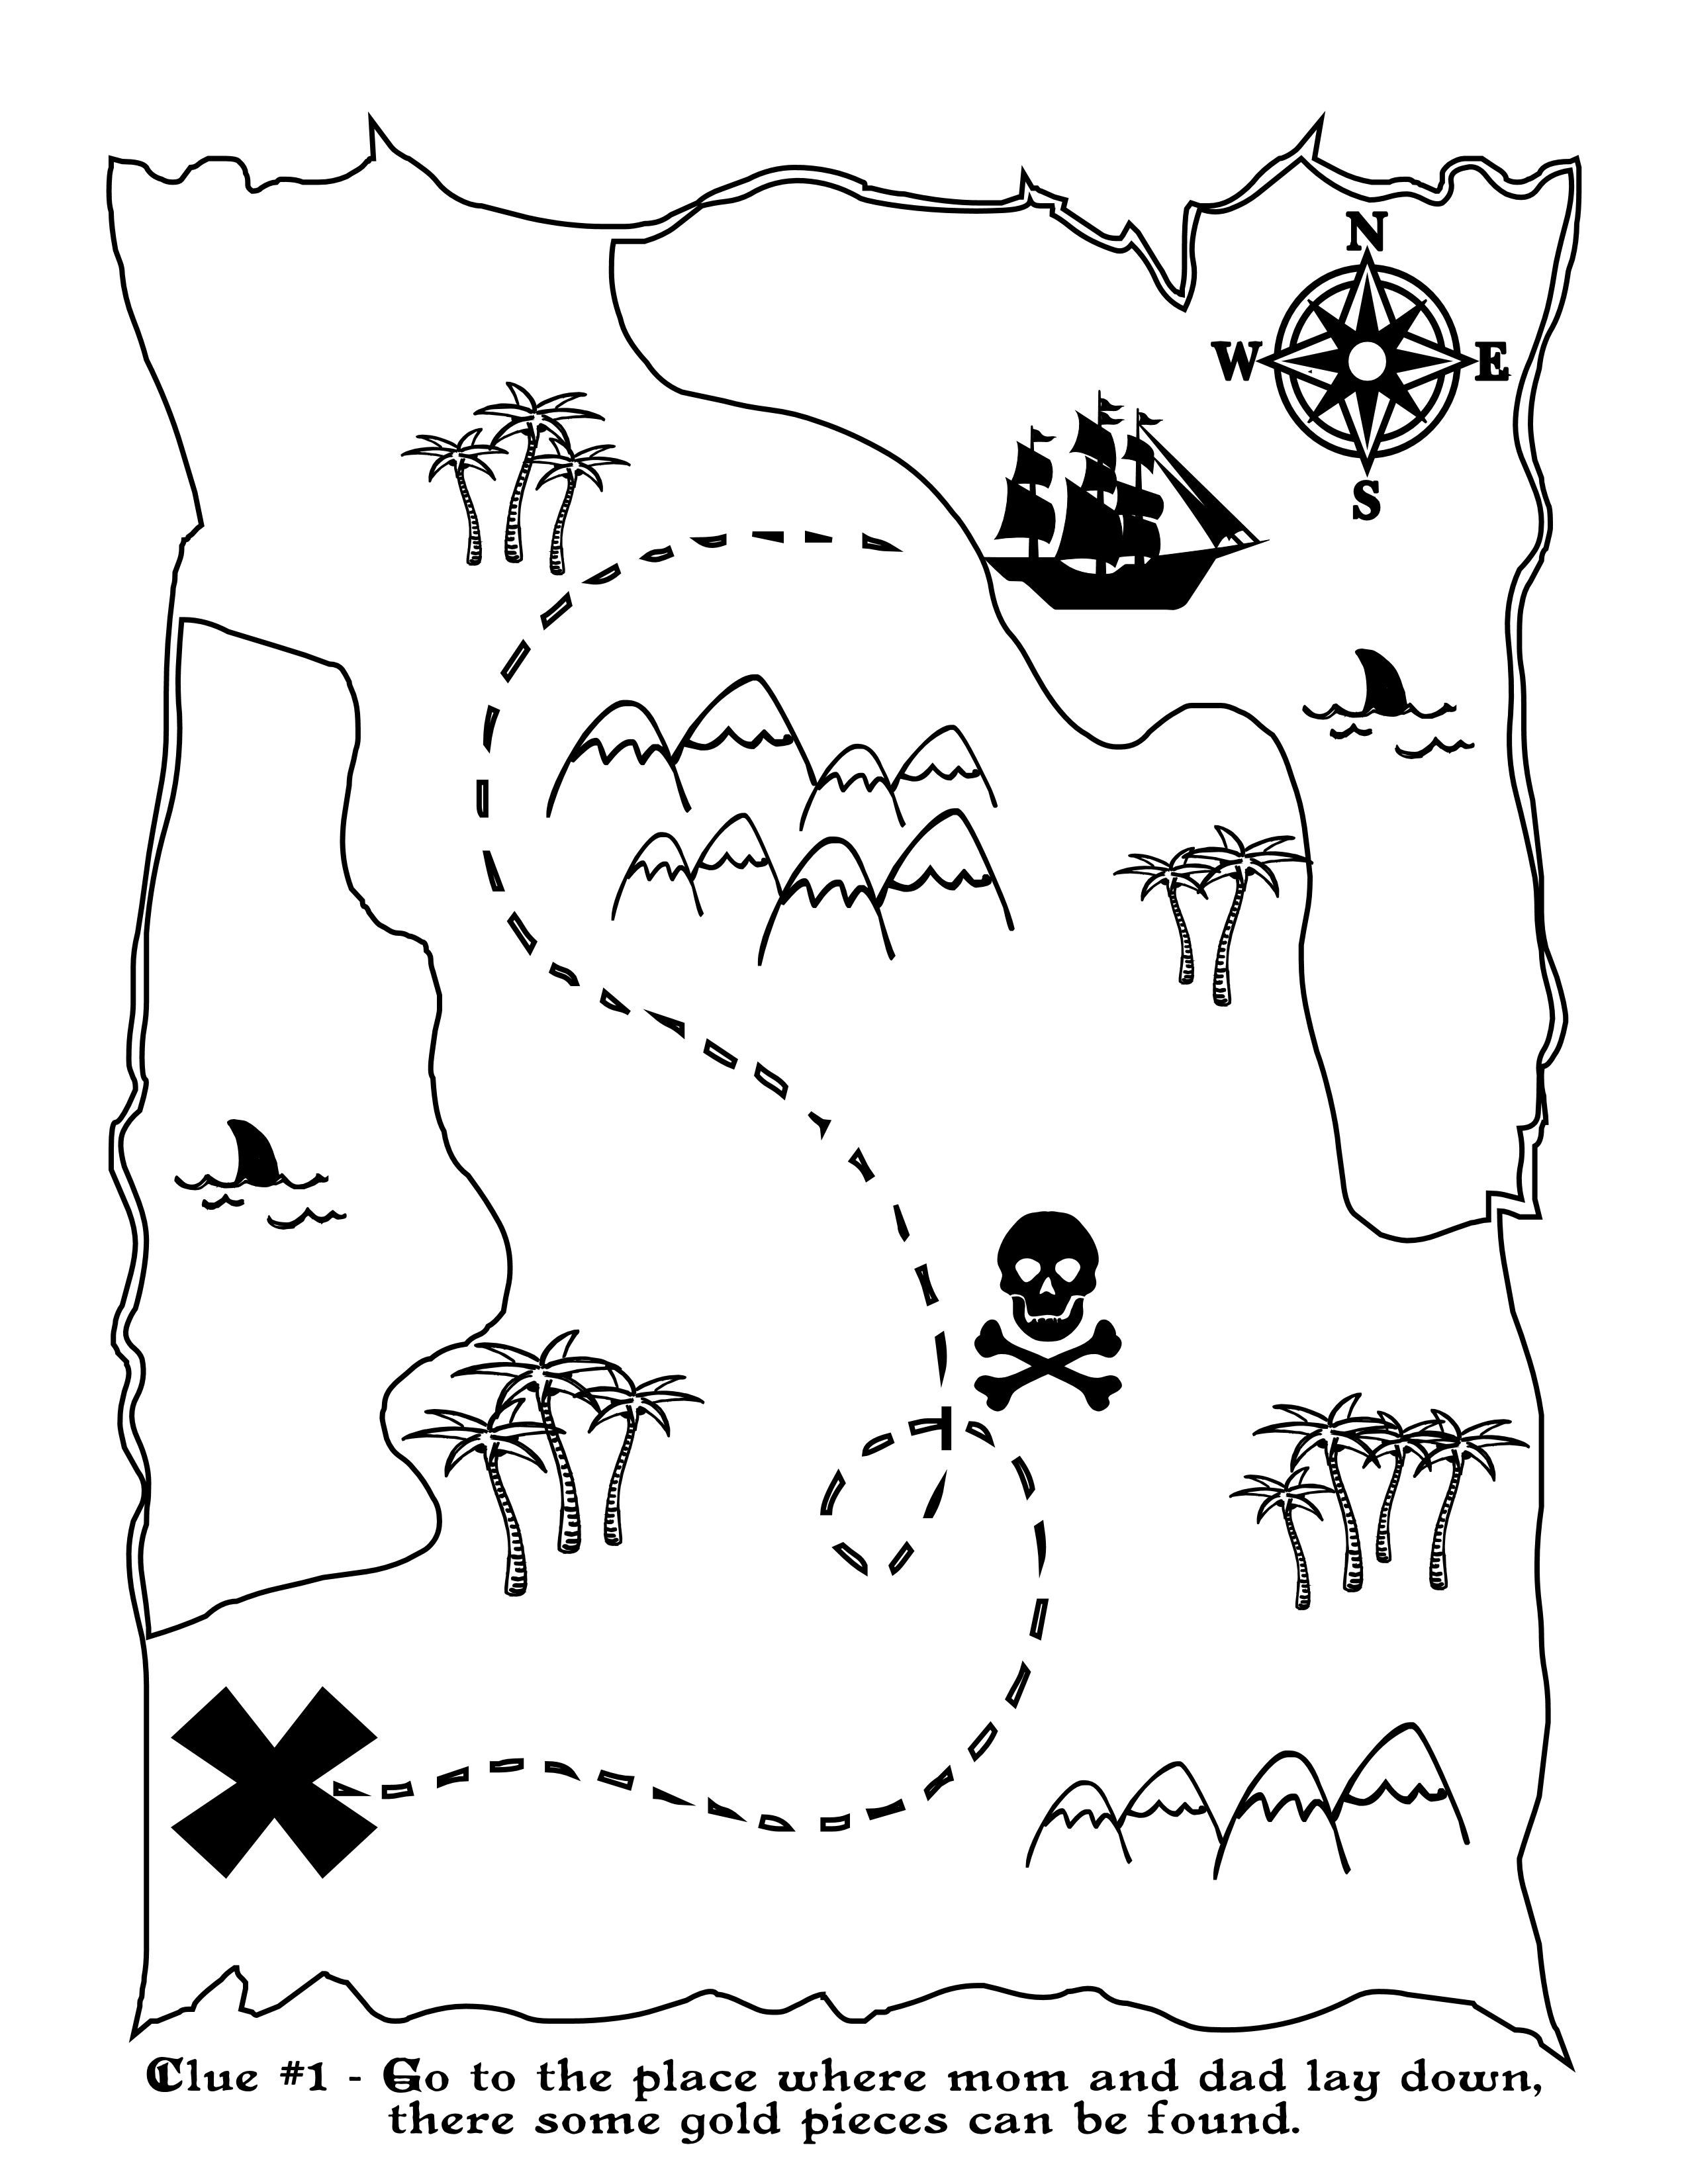 graphic relating to Printable Treasure Map named Printable Treasure Map Small children Recreation Lesson application Programs